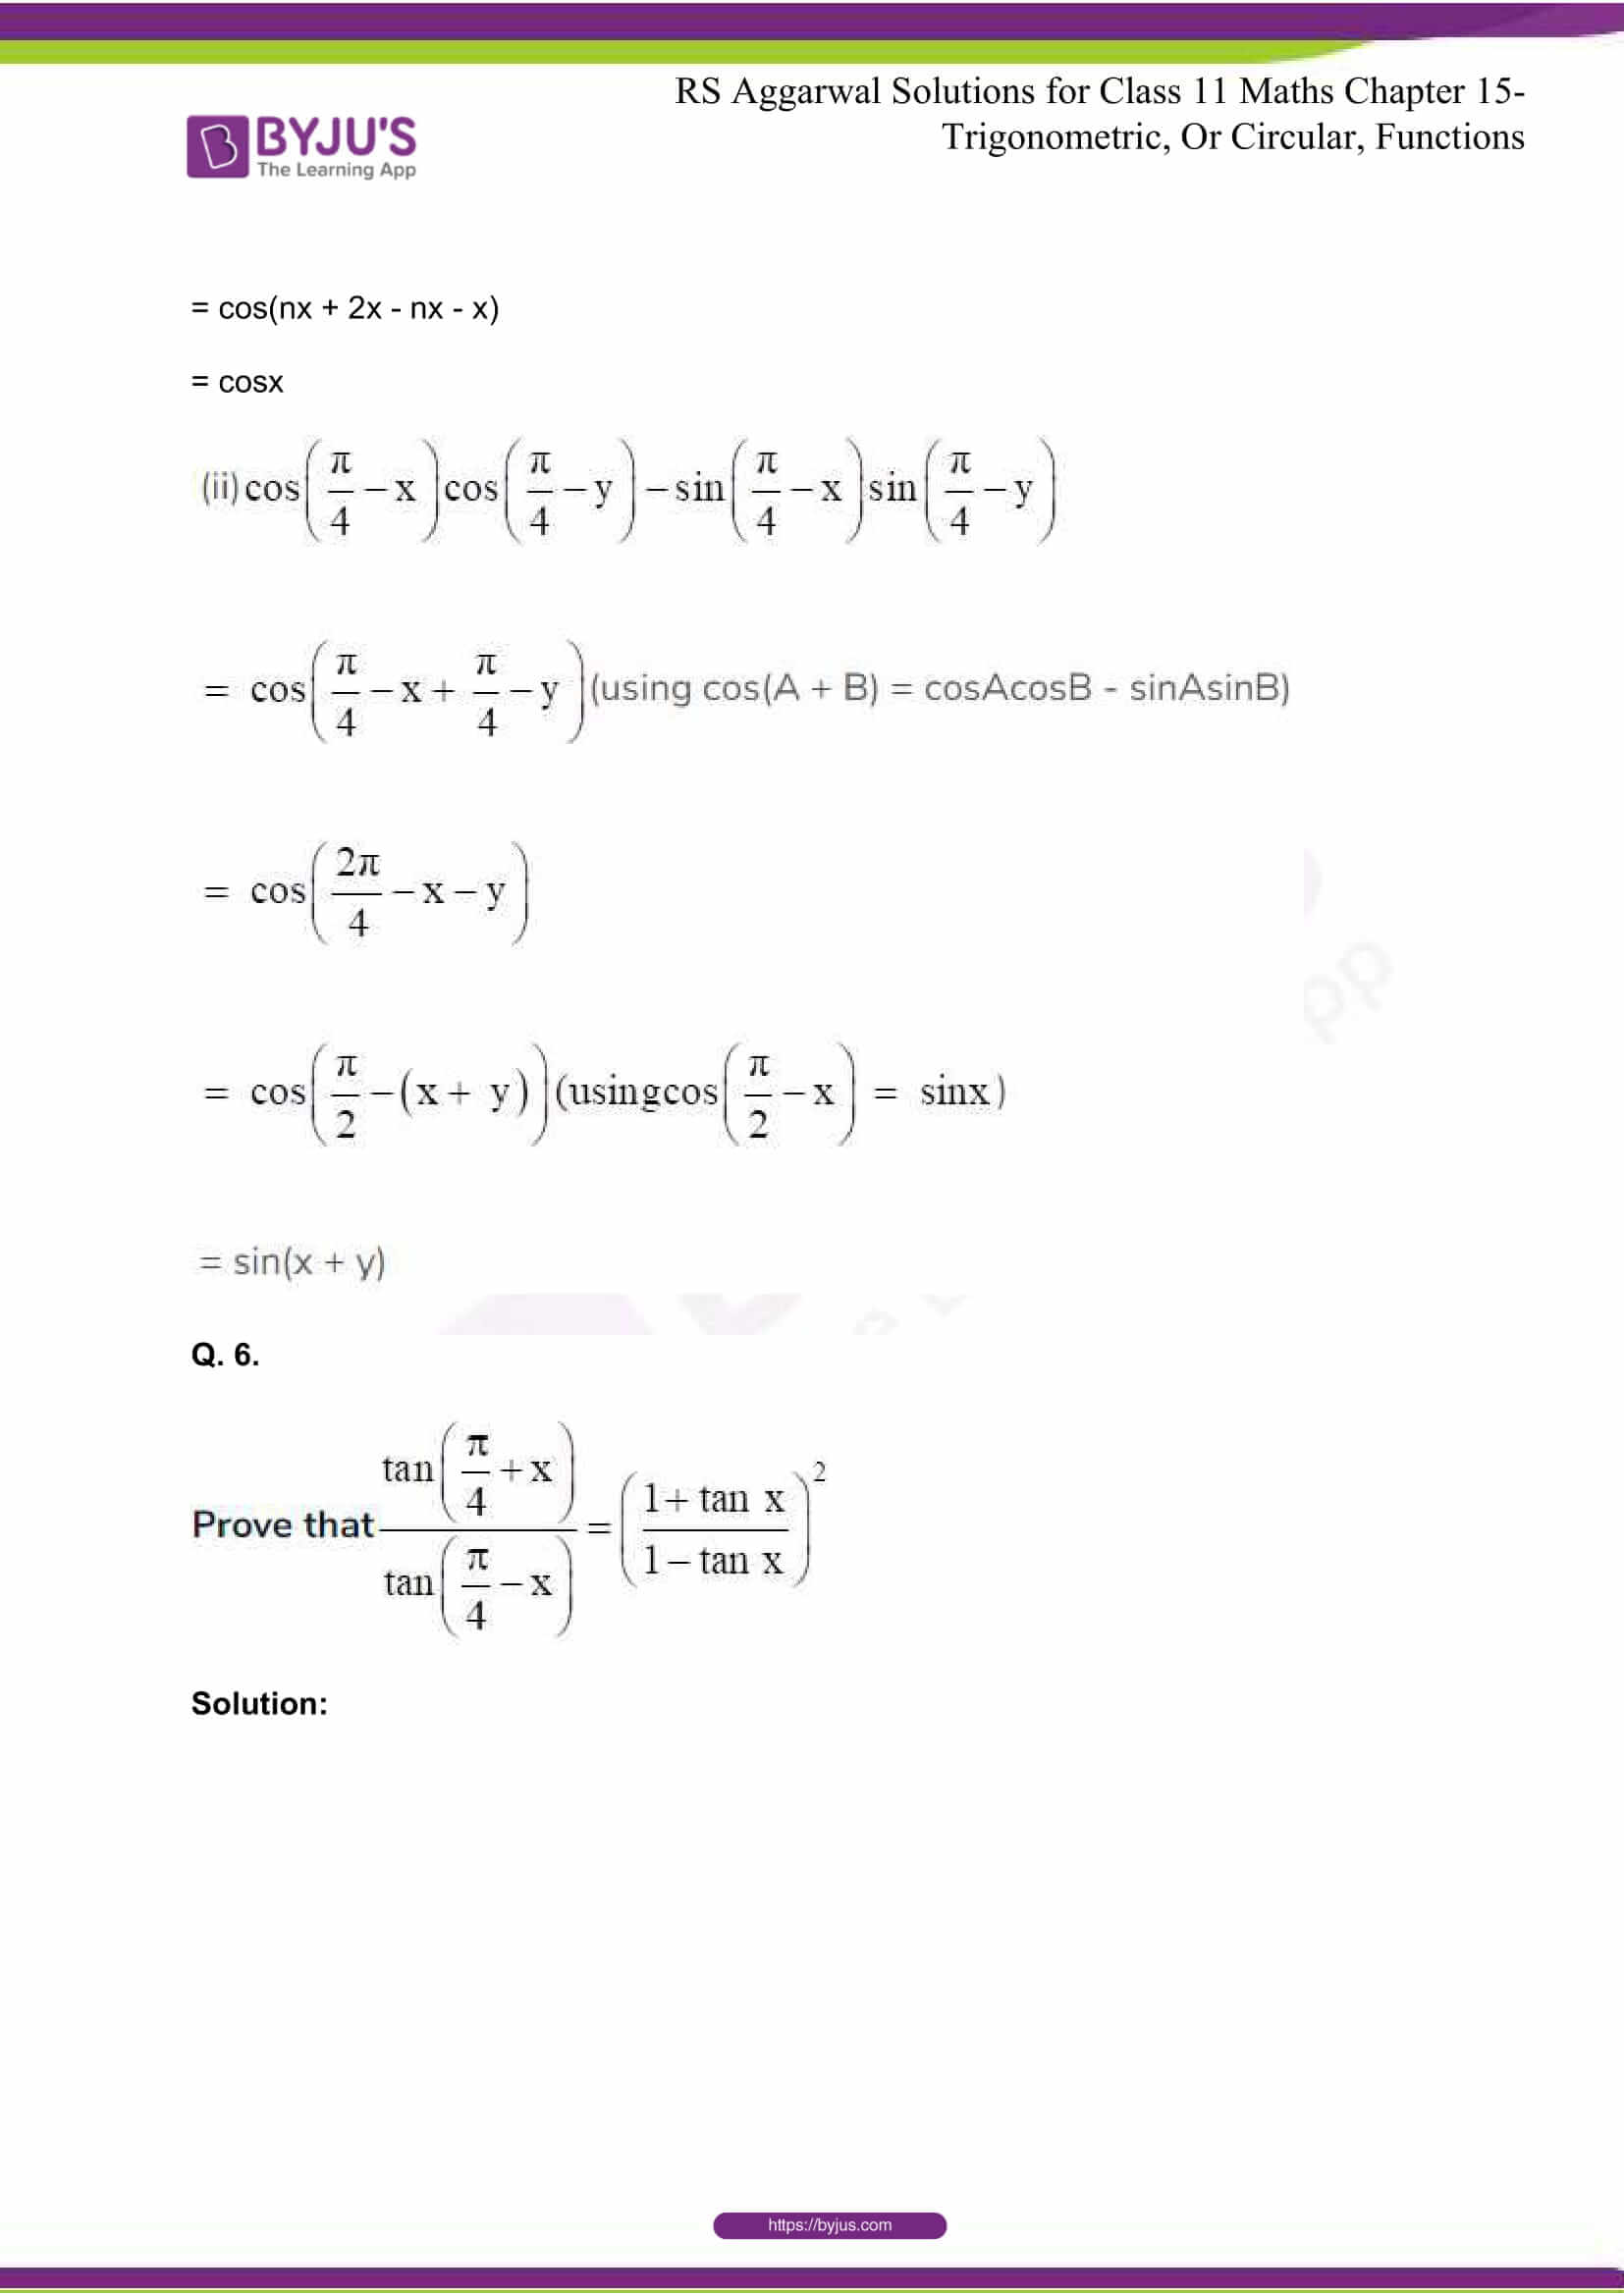 rsaggarwal solutions class 11 maths chapter 15 035